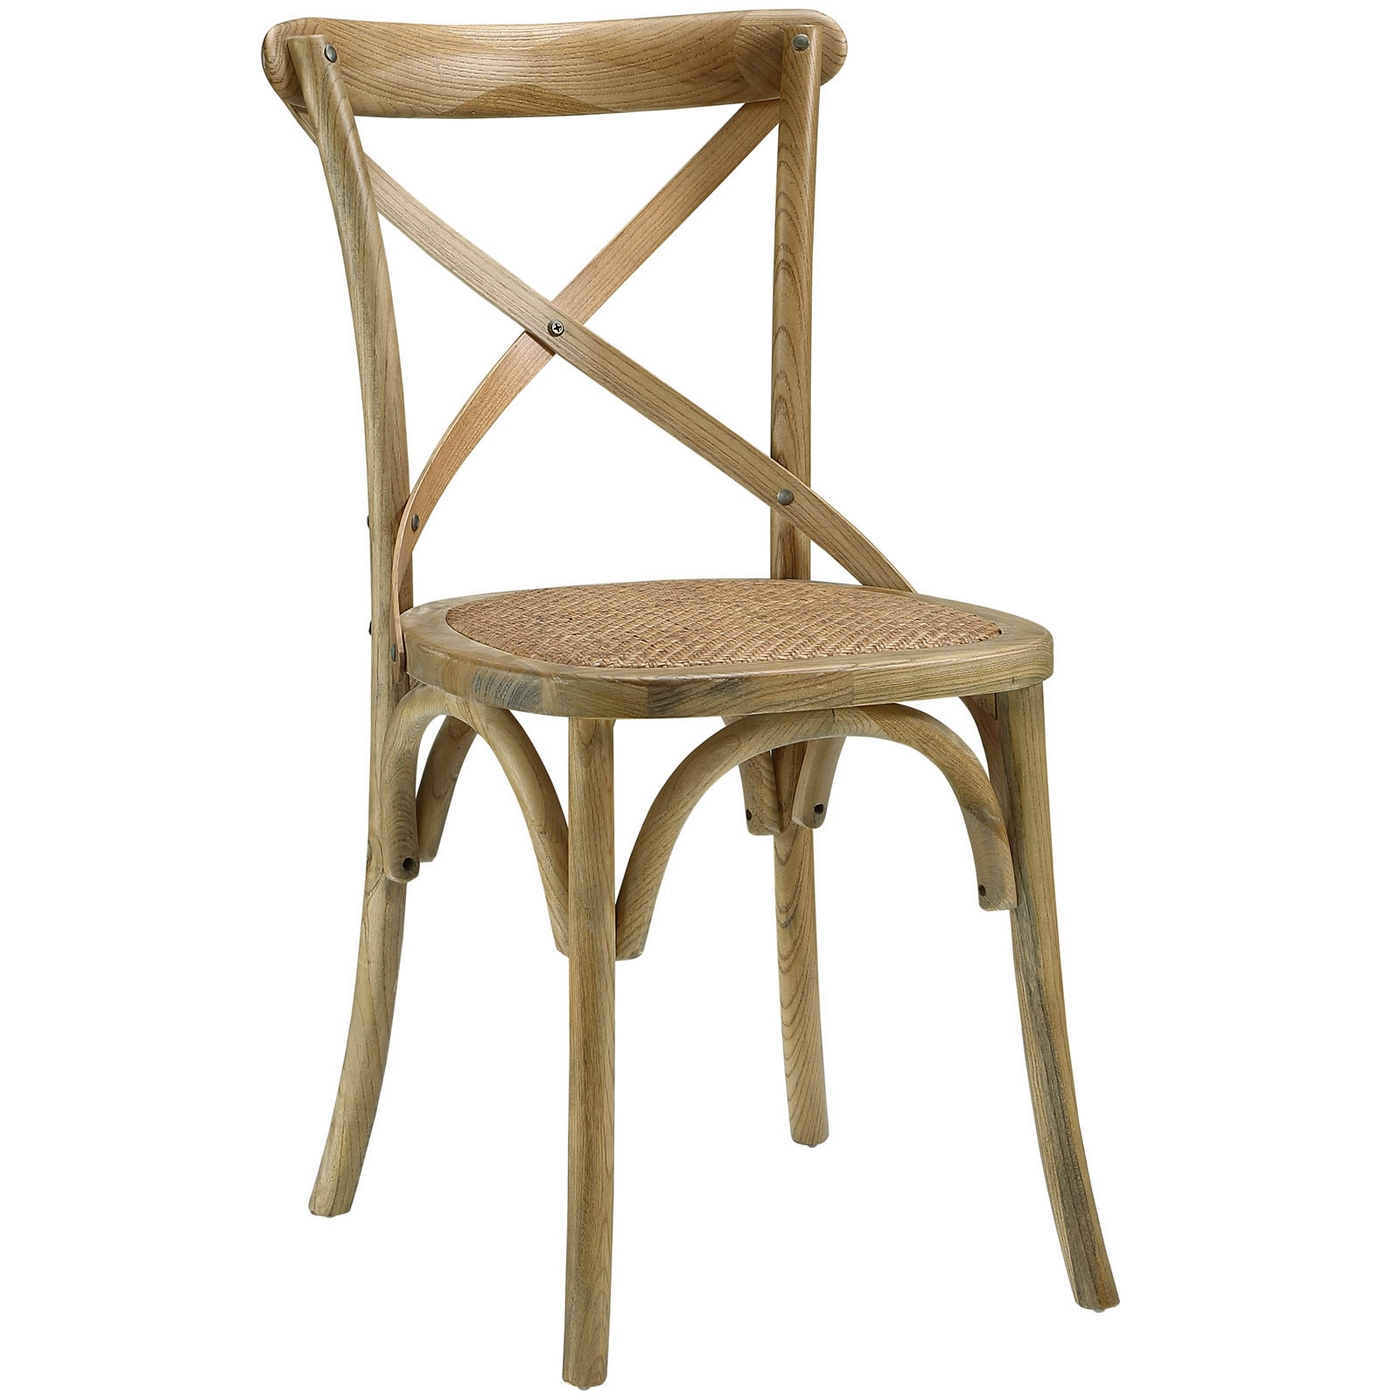 x back chairs wheelchair meaning in hindi gear modern country wooden quotx quot side chair w rattan